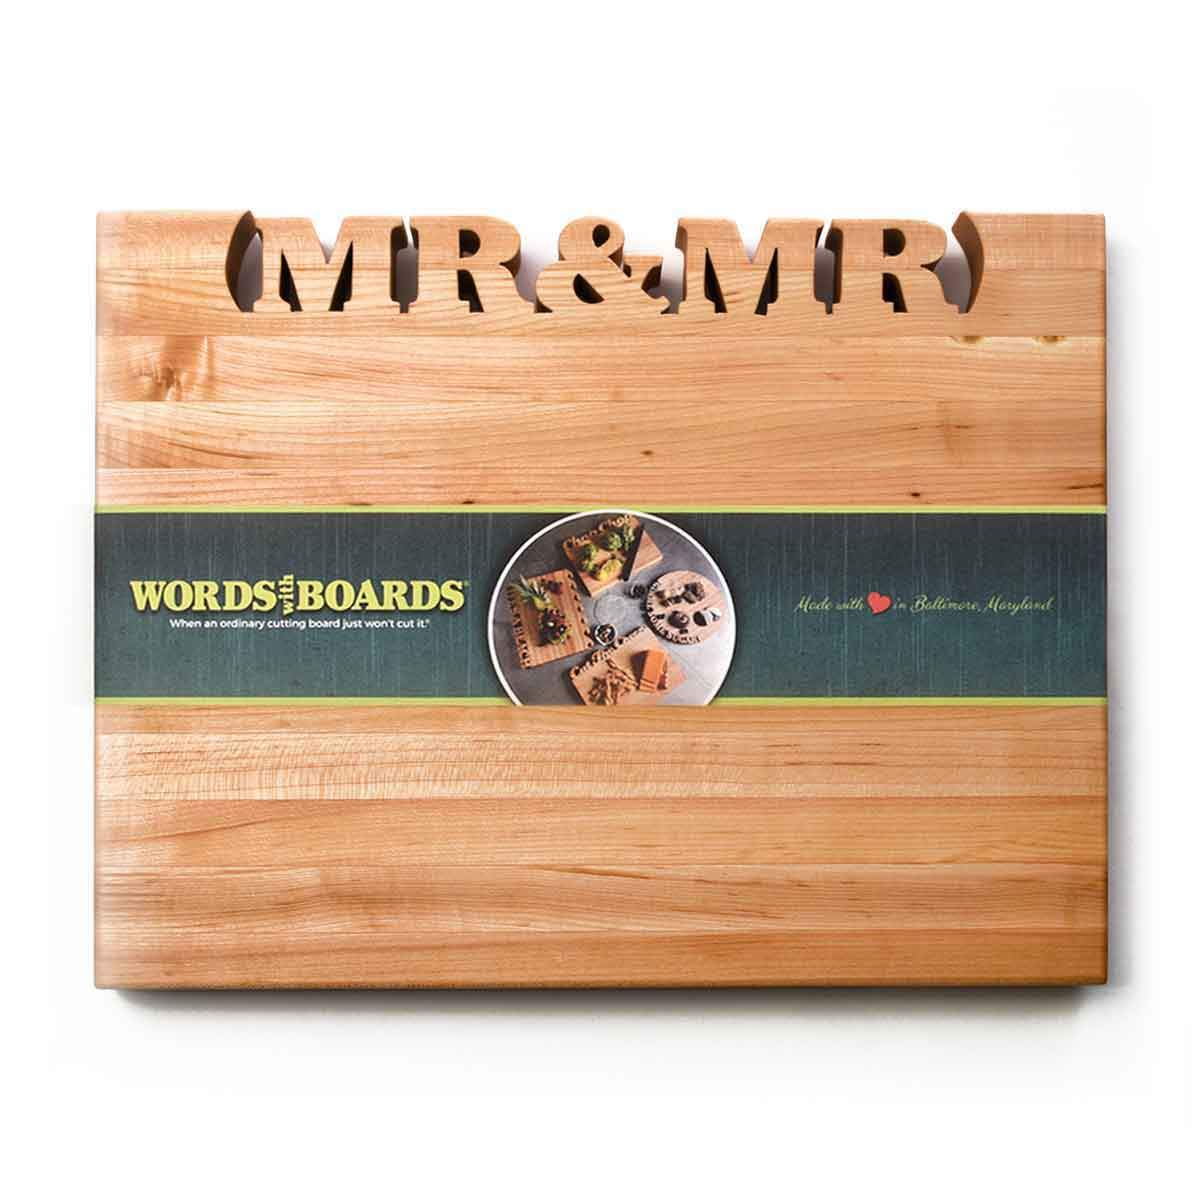 Unique Wedding Gifts: Wedding ideas for same sex partners - Words with Boards - 2